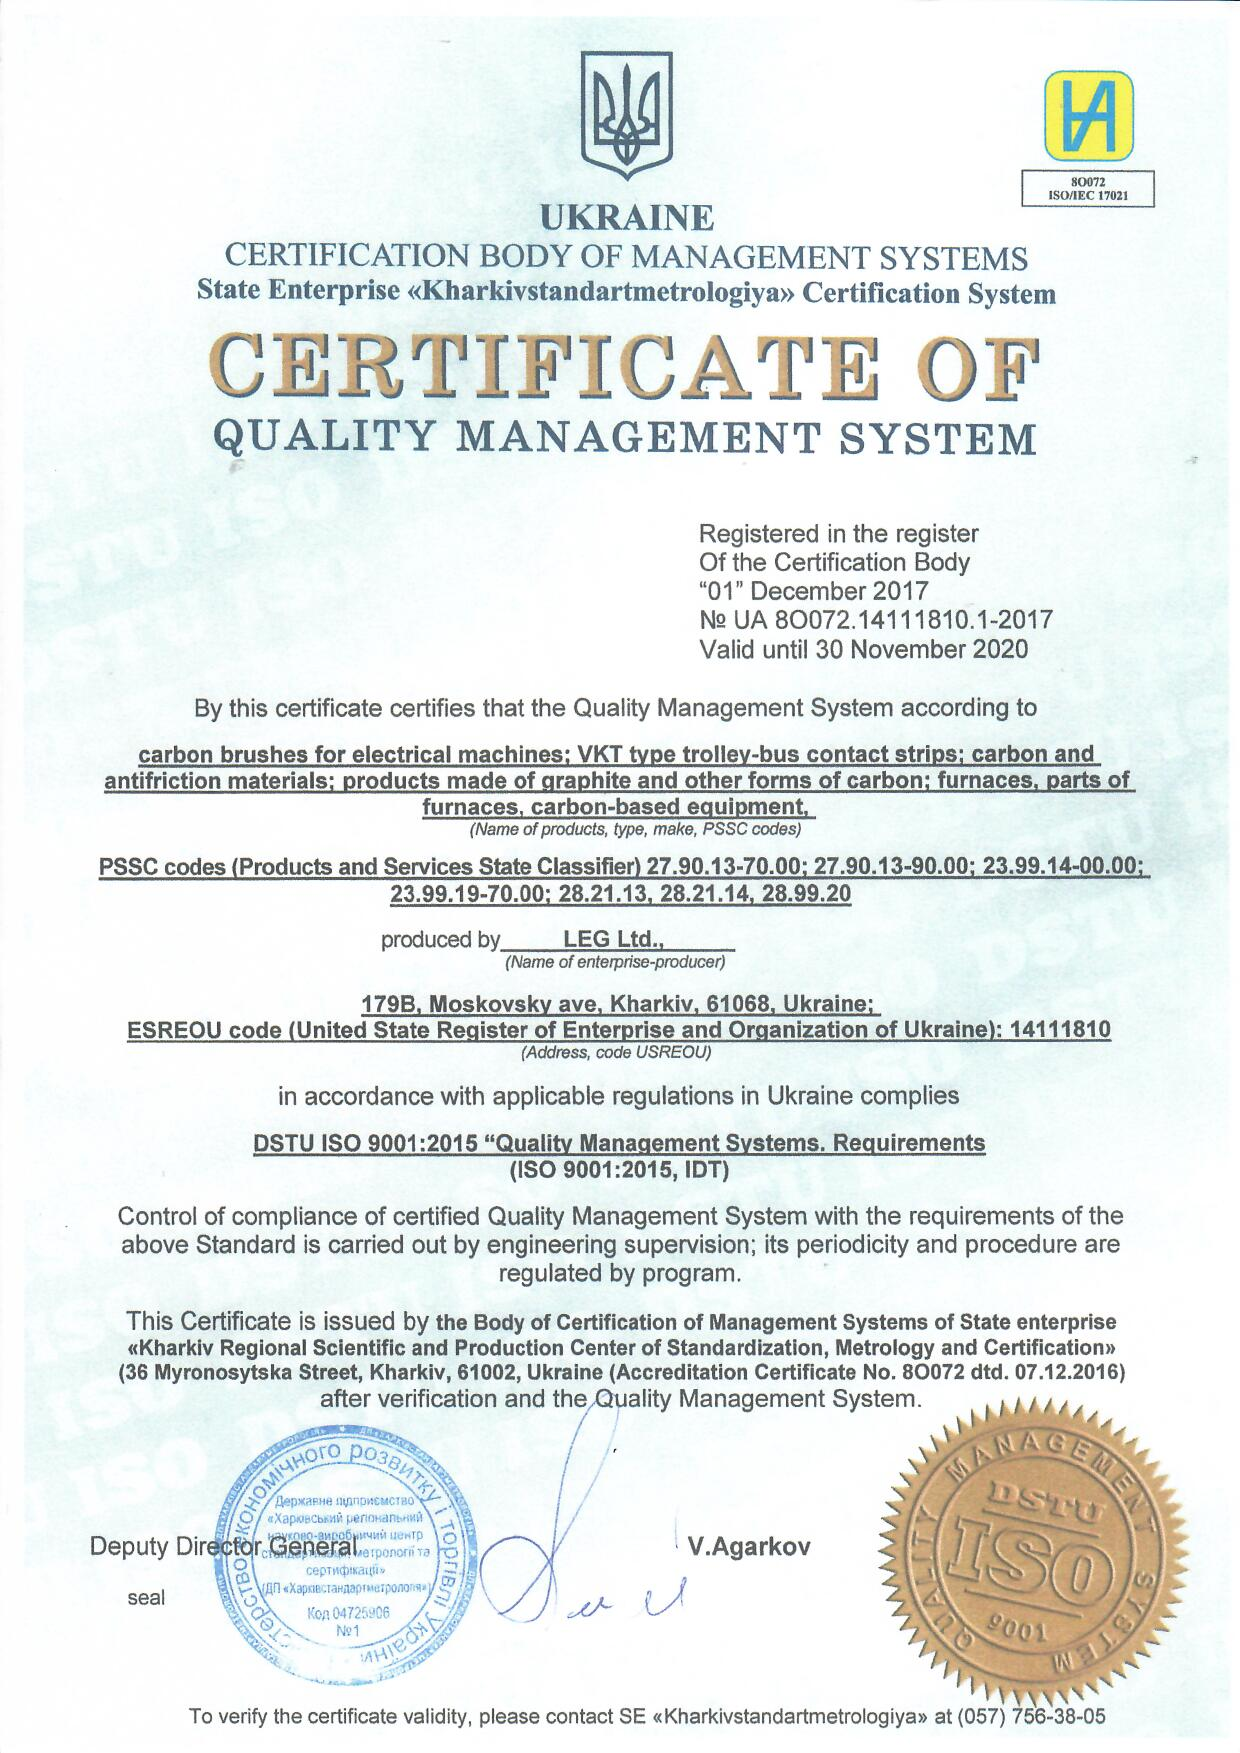 LEG's certificate of registration of quality management system to ISO 9001